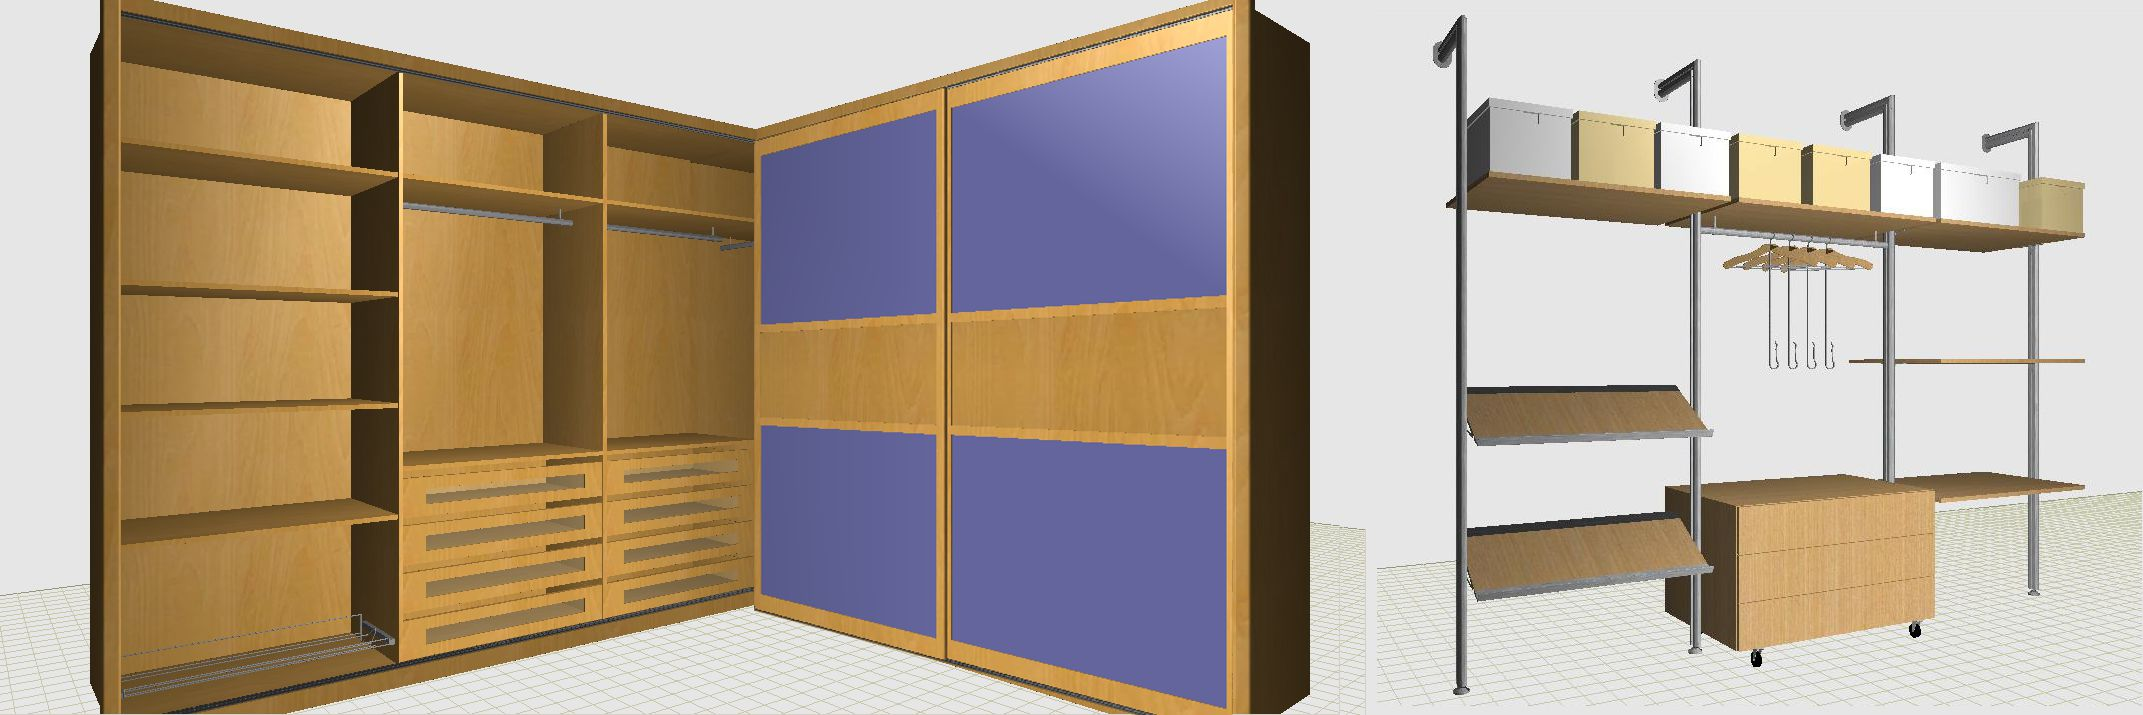 3D photorealistic image of the wardrobe with or without doors